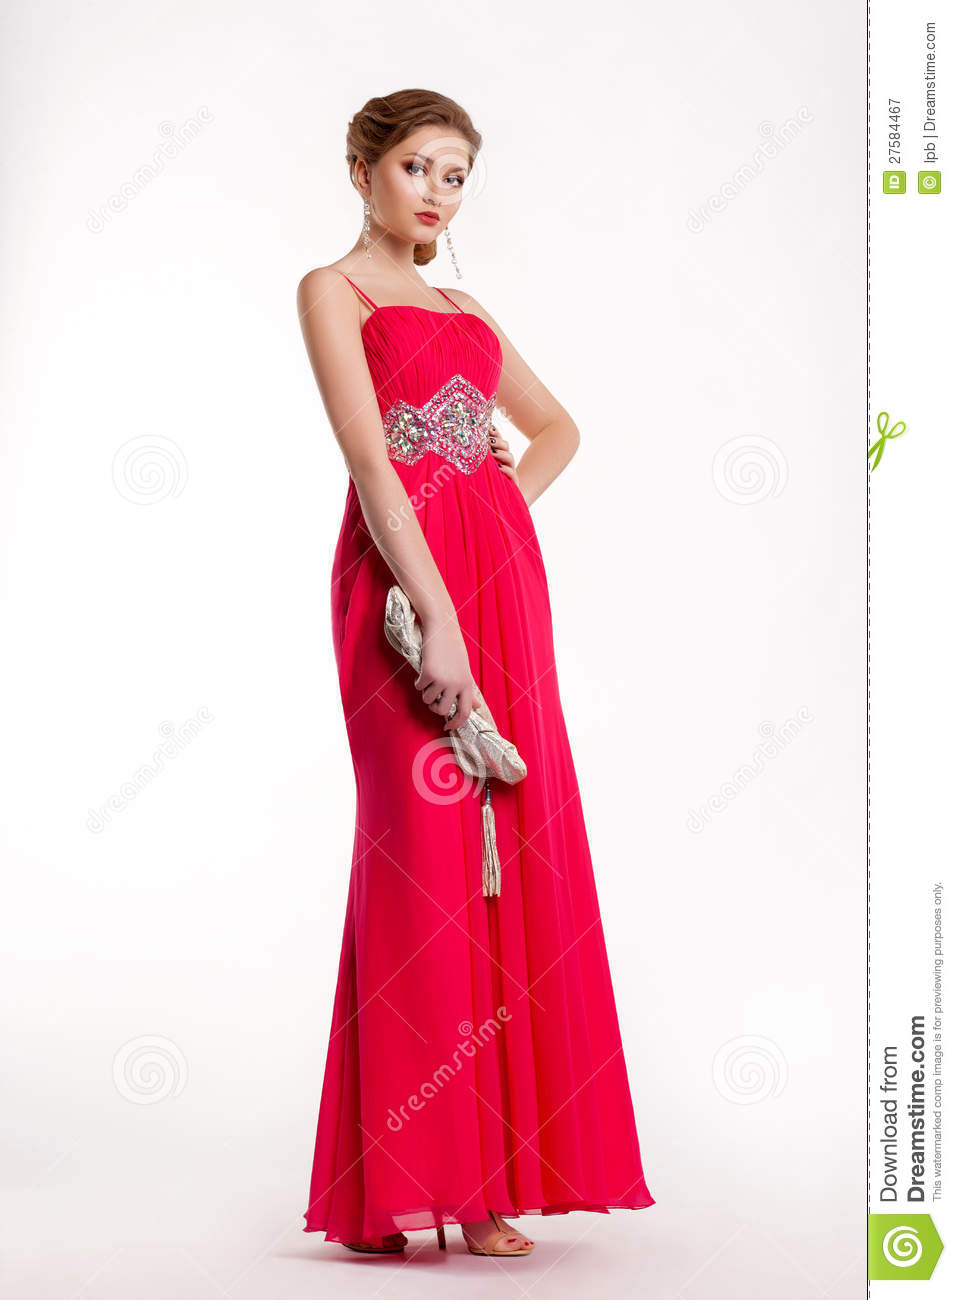 fashion model dress